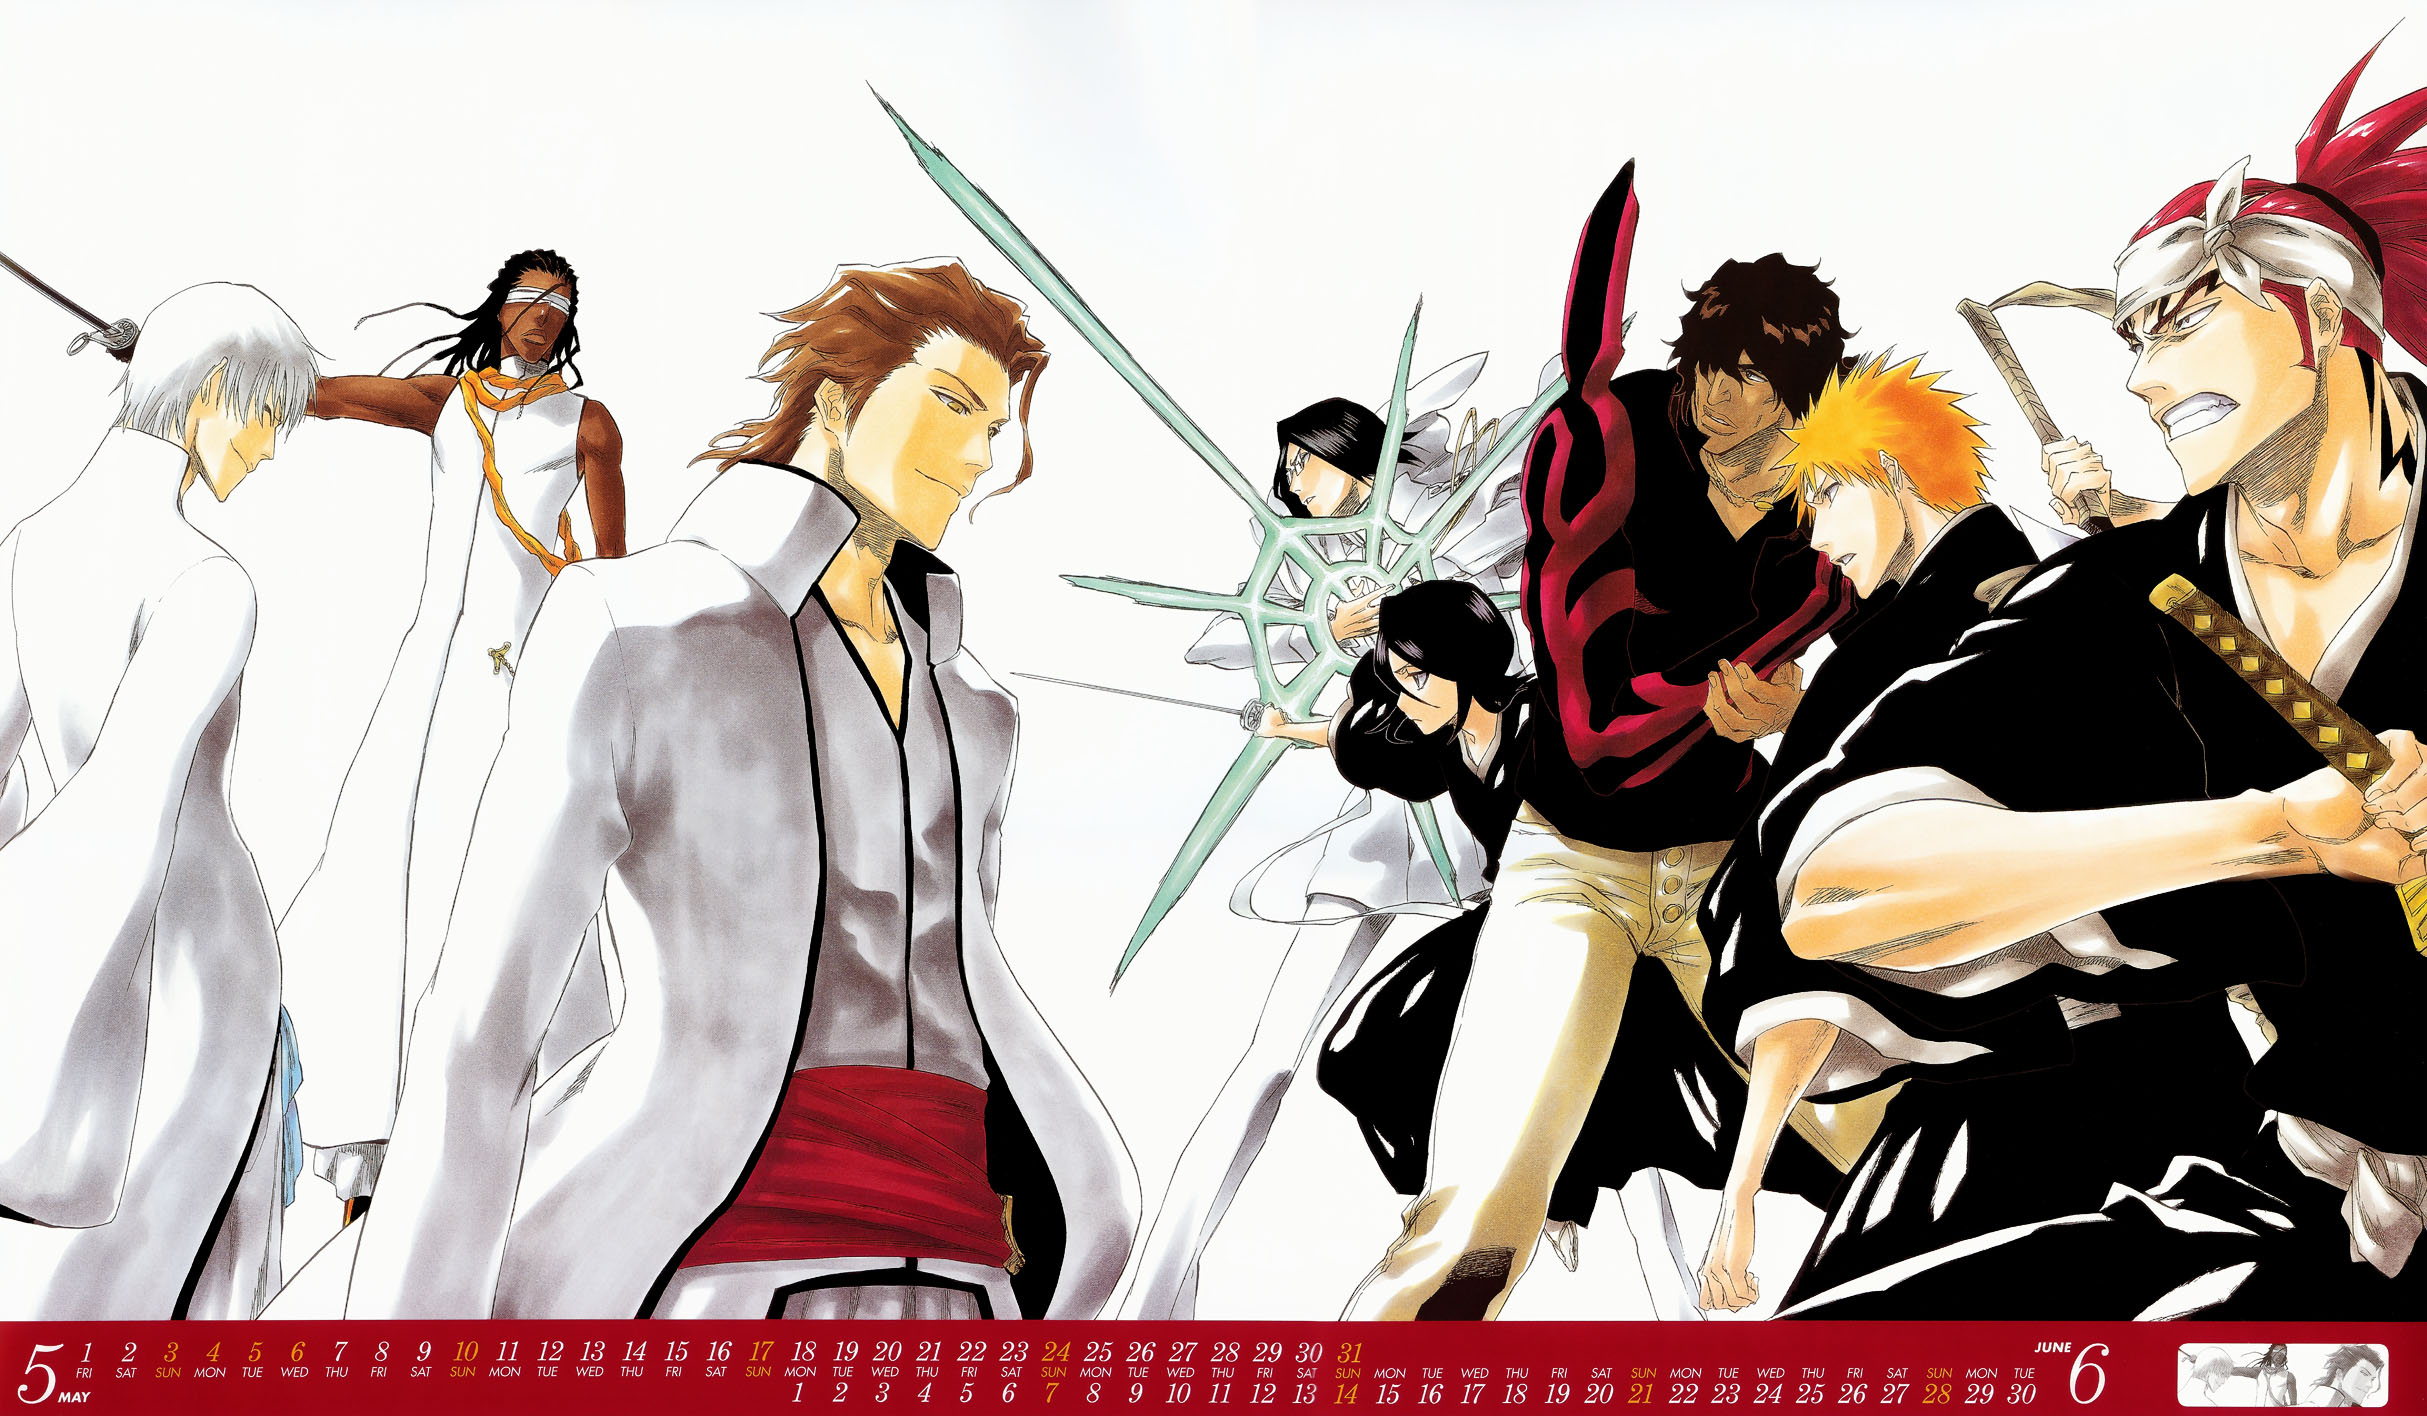 Episodes: This is a complete list of episodes for the Bleach anime series. The list is broken into several story arcs and includes a summary of each story arc and the.